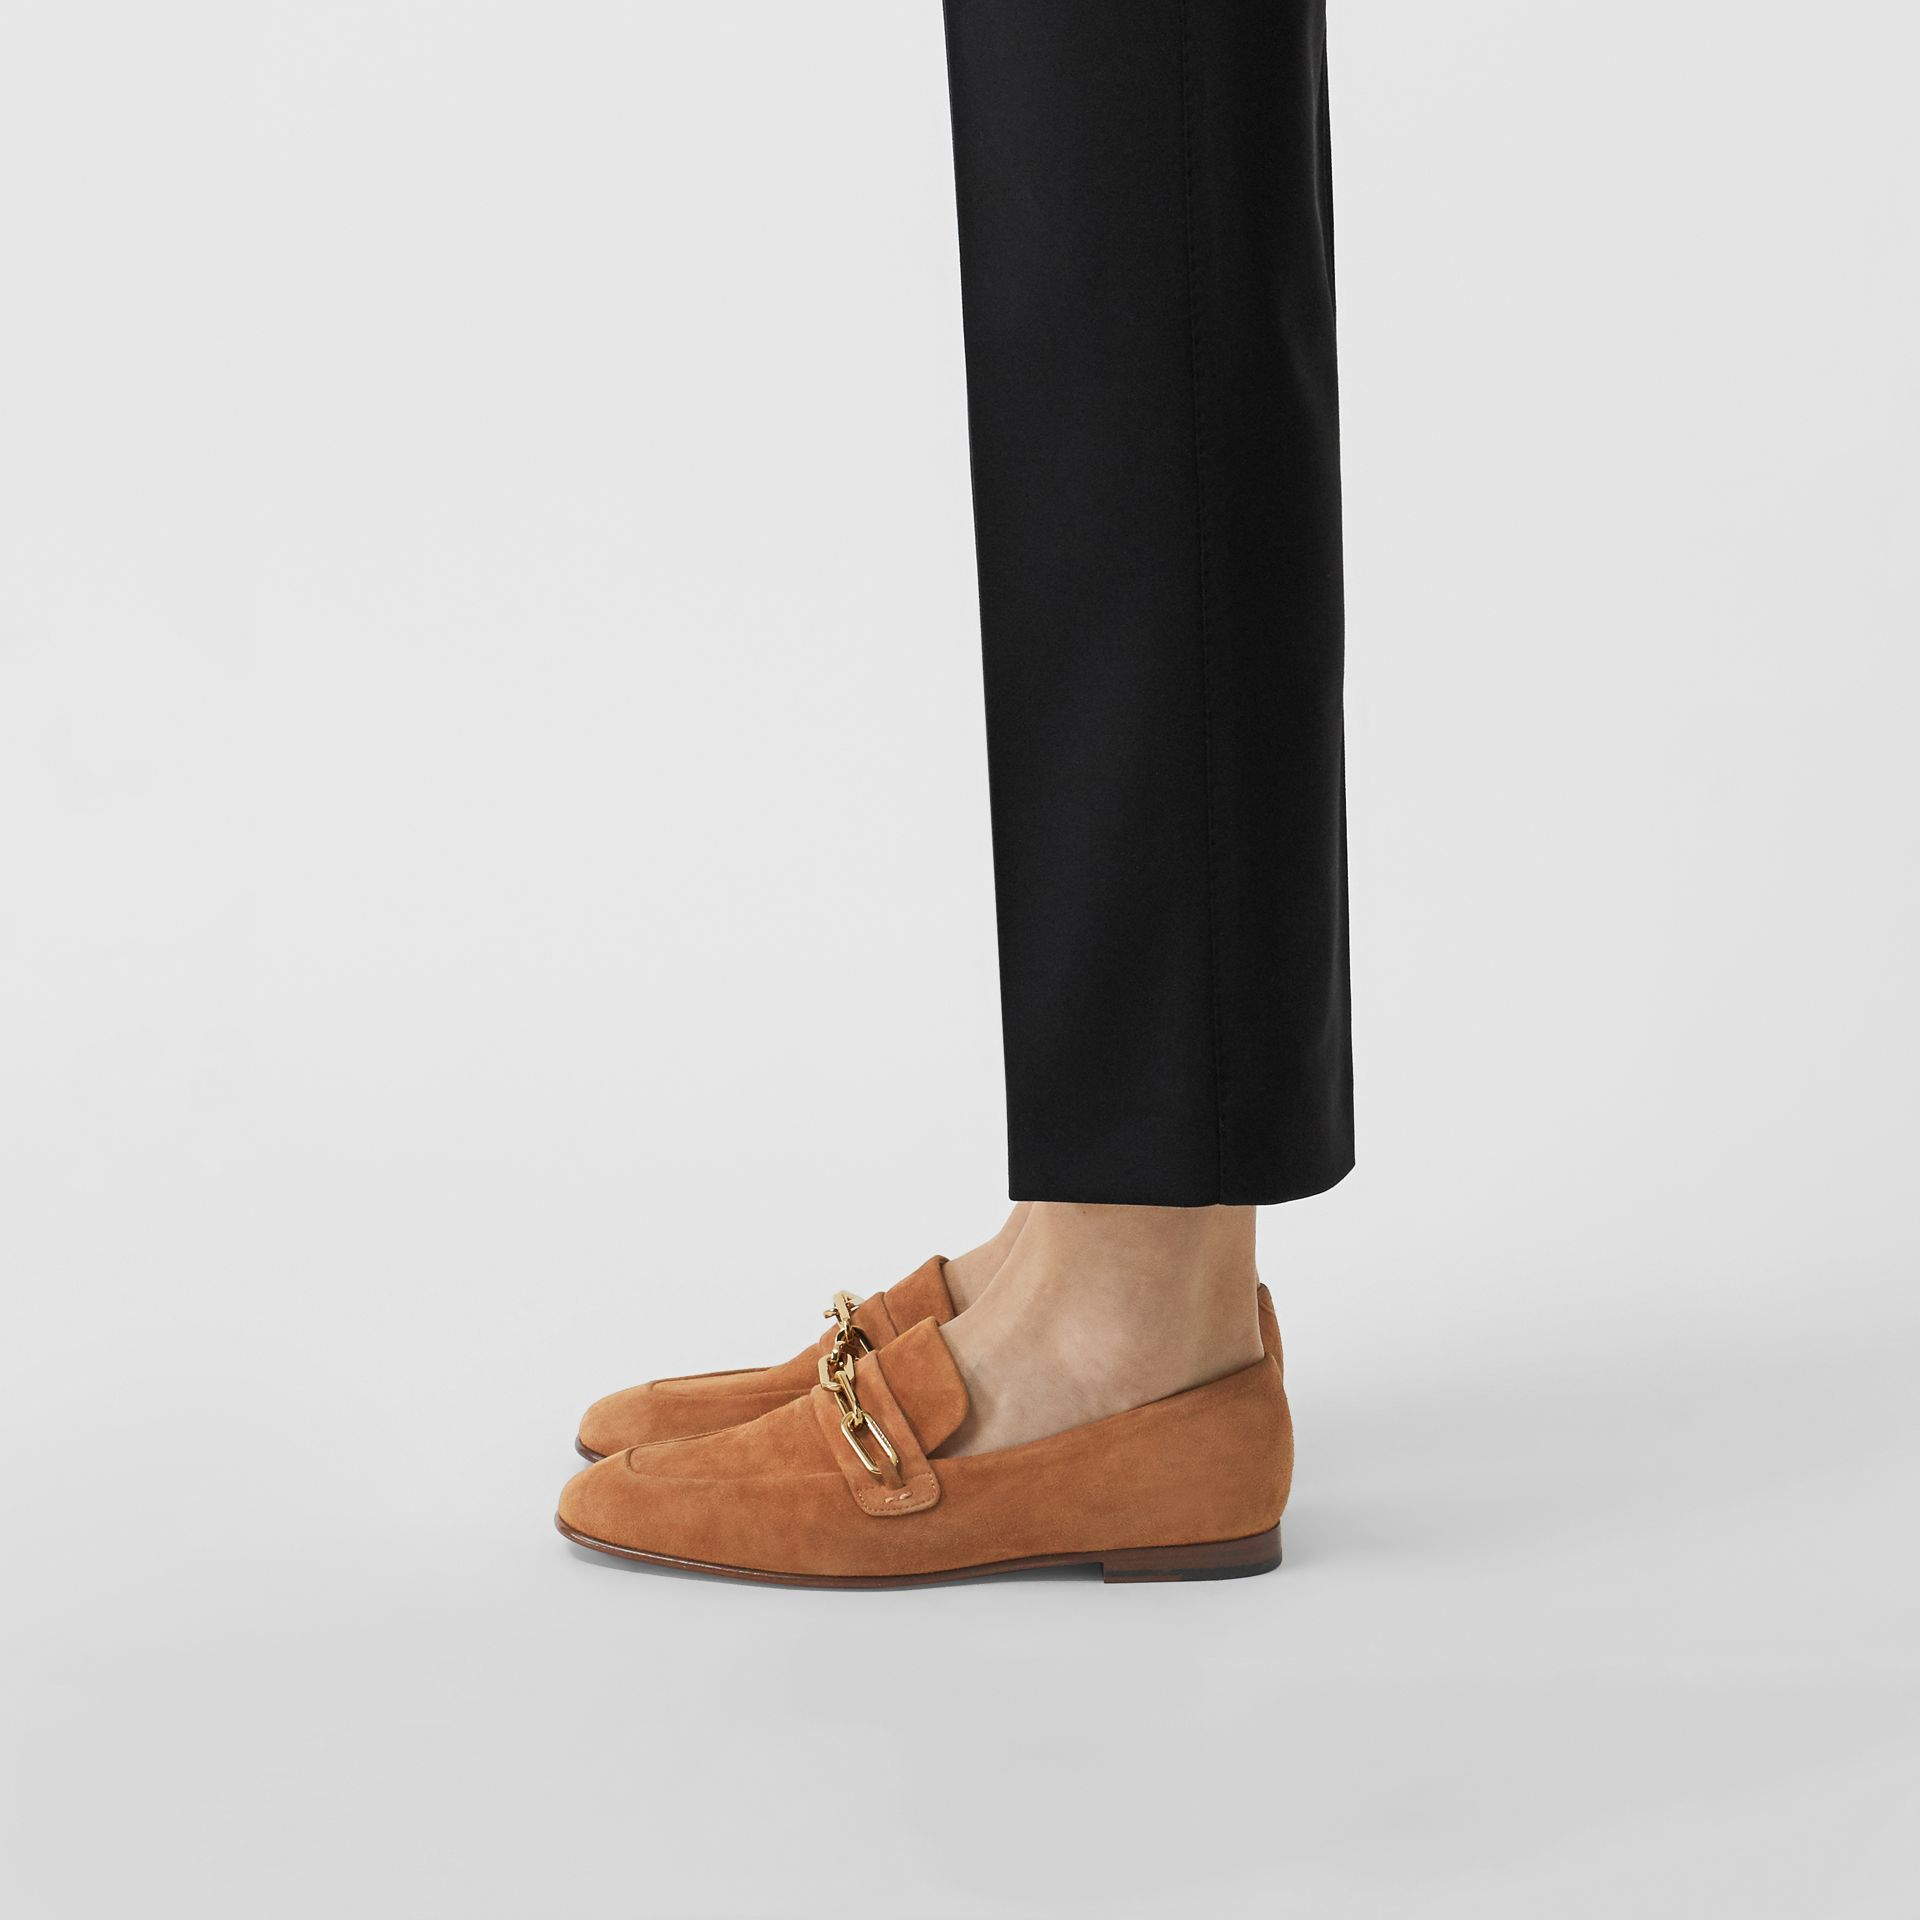 Link Detail Suede Loafers in Mid Camel - Women | Burberry United Kingdom - gallery image 2